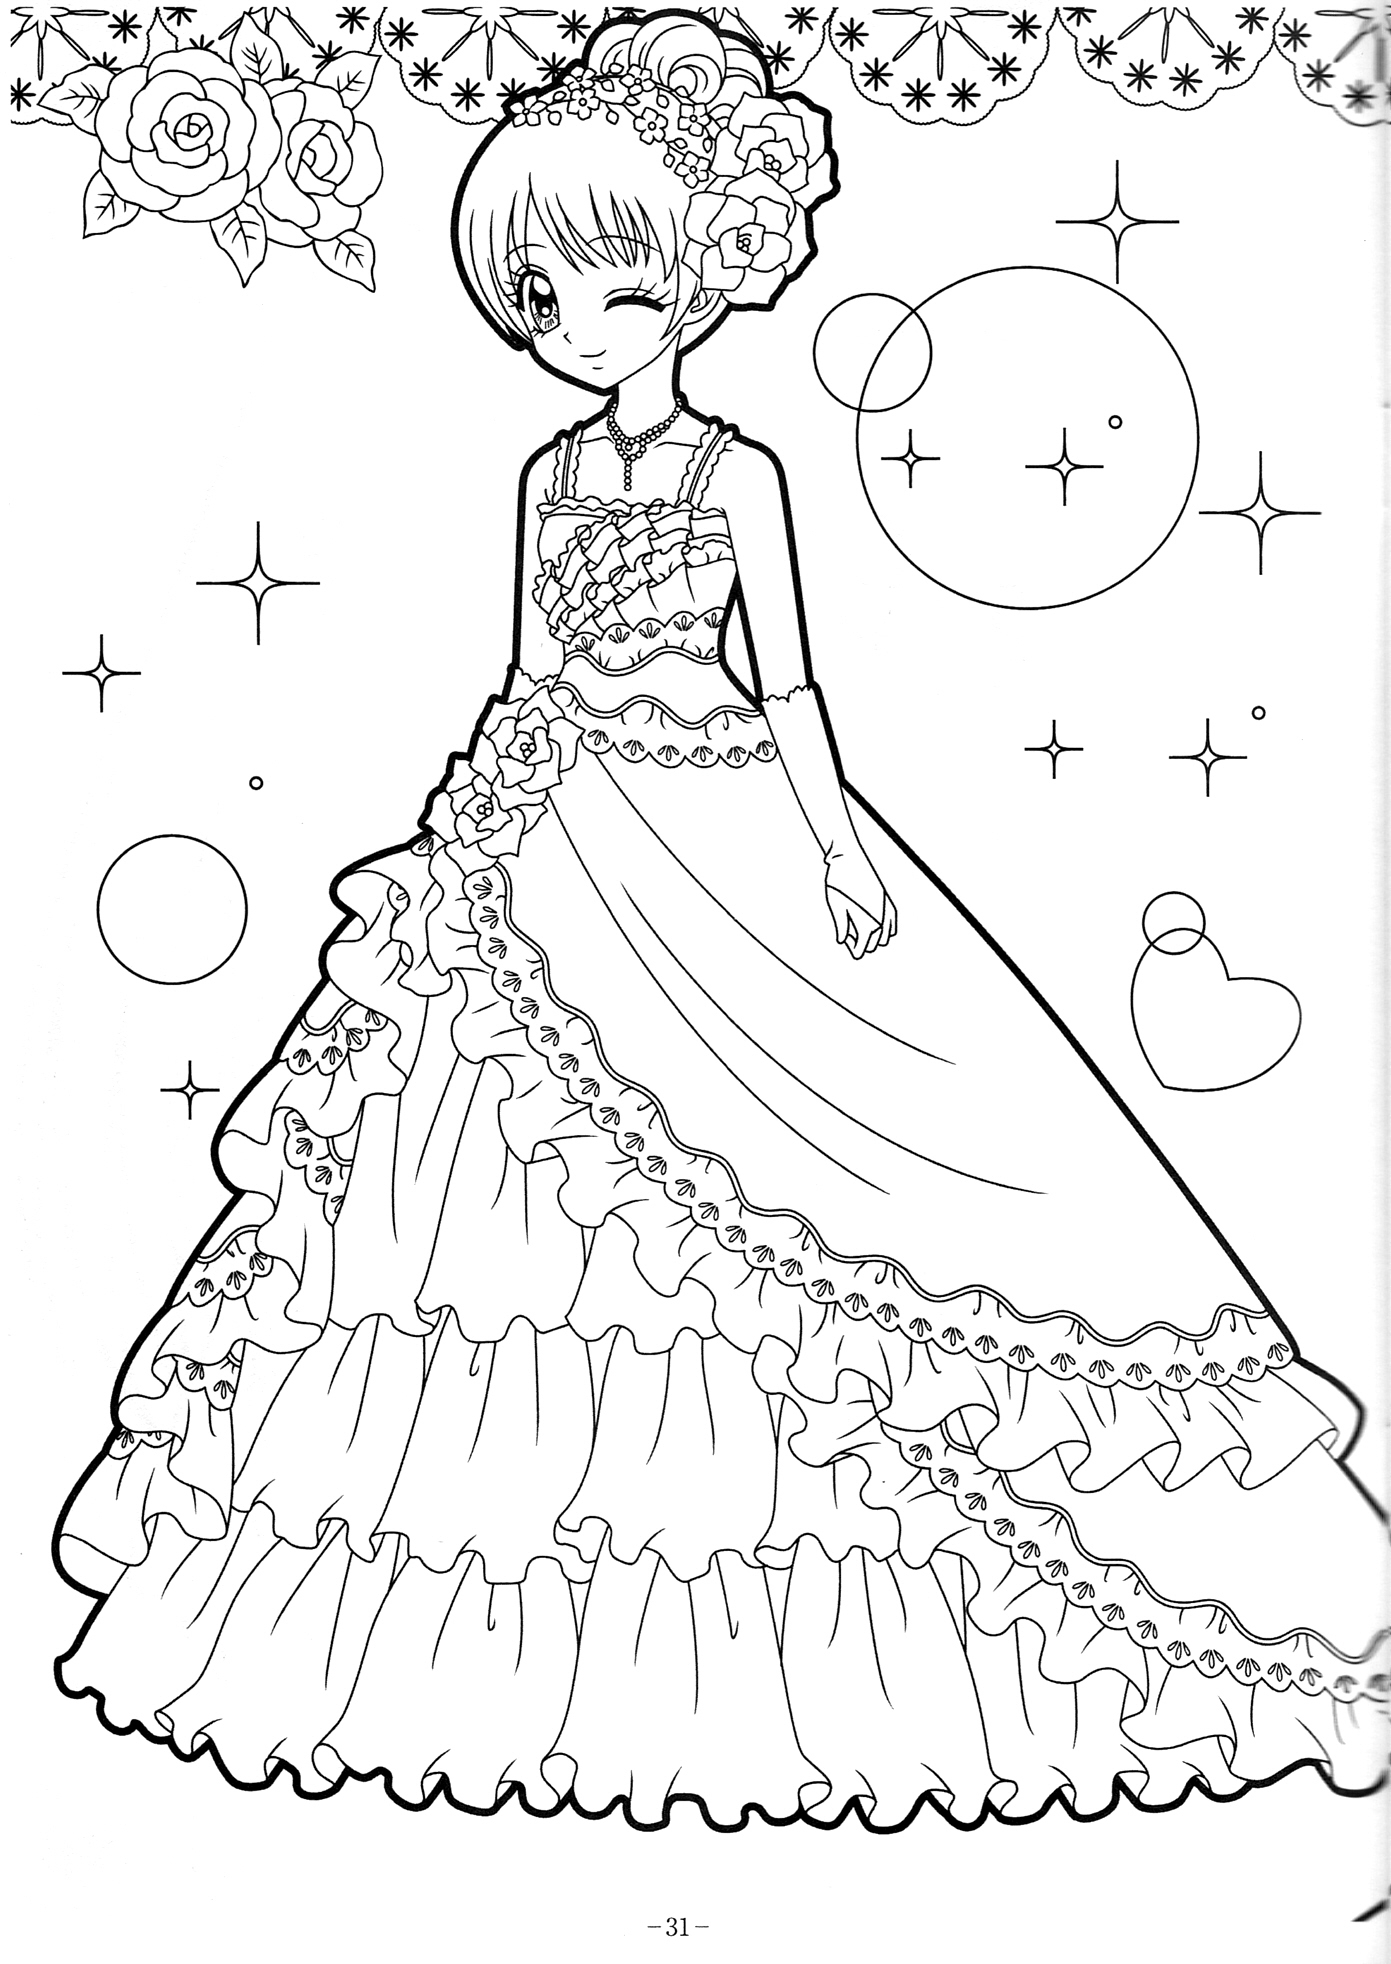 Anime princess coloring pages - 17 Best Images About Japanese Anime Coloring Page On Pinterest Dibujo Coloring For Adults And Vintage